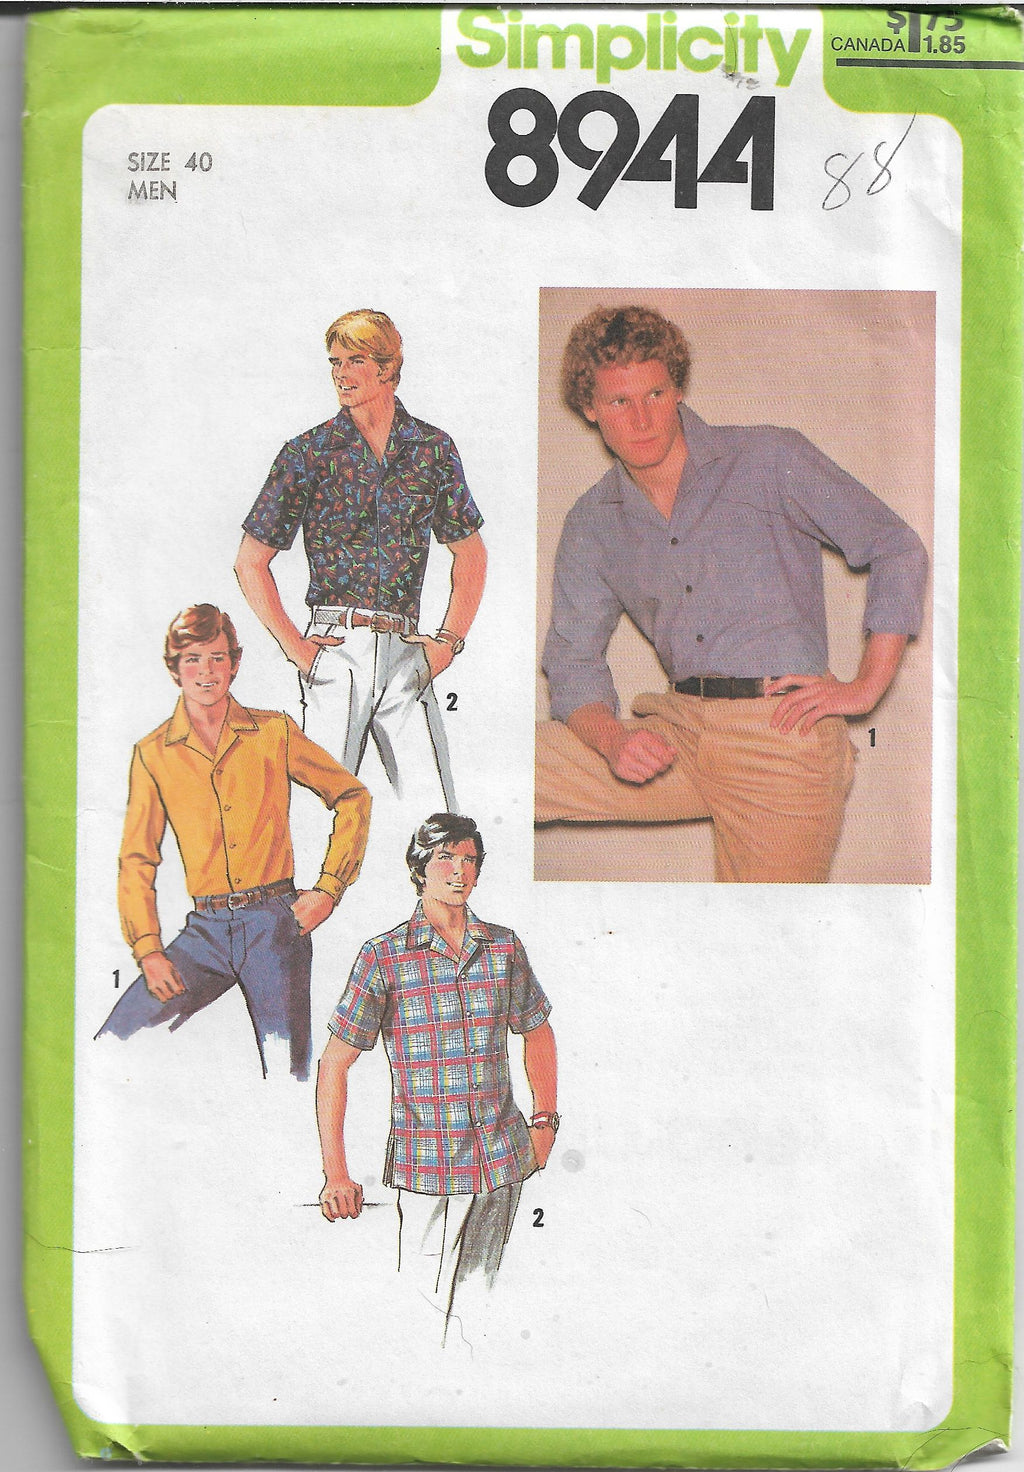 Simplicity 8944 Mens Shirt Vintage Sewing Pattern 1970s - VintageStitching - Vintage Sewing Patterns